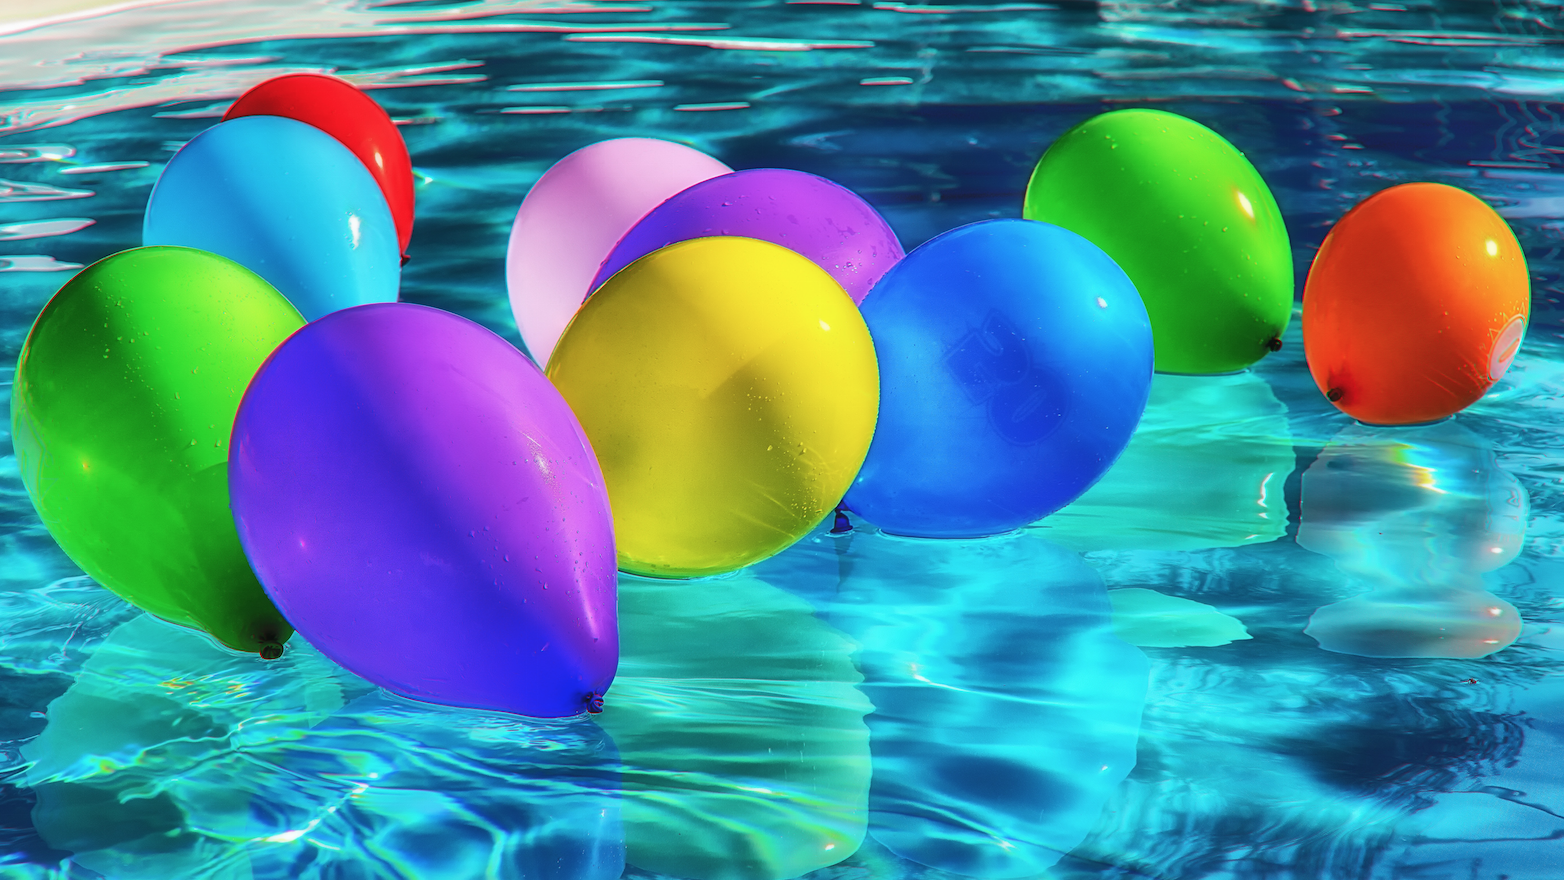 balloons floating on water